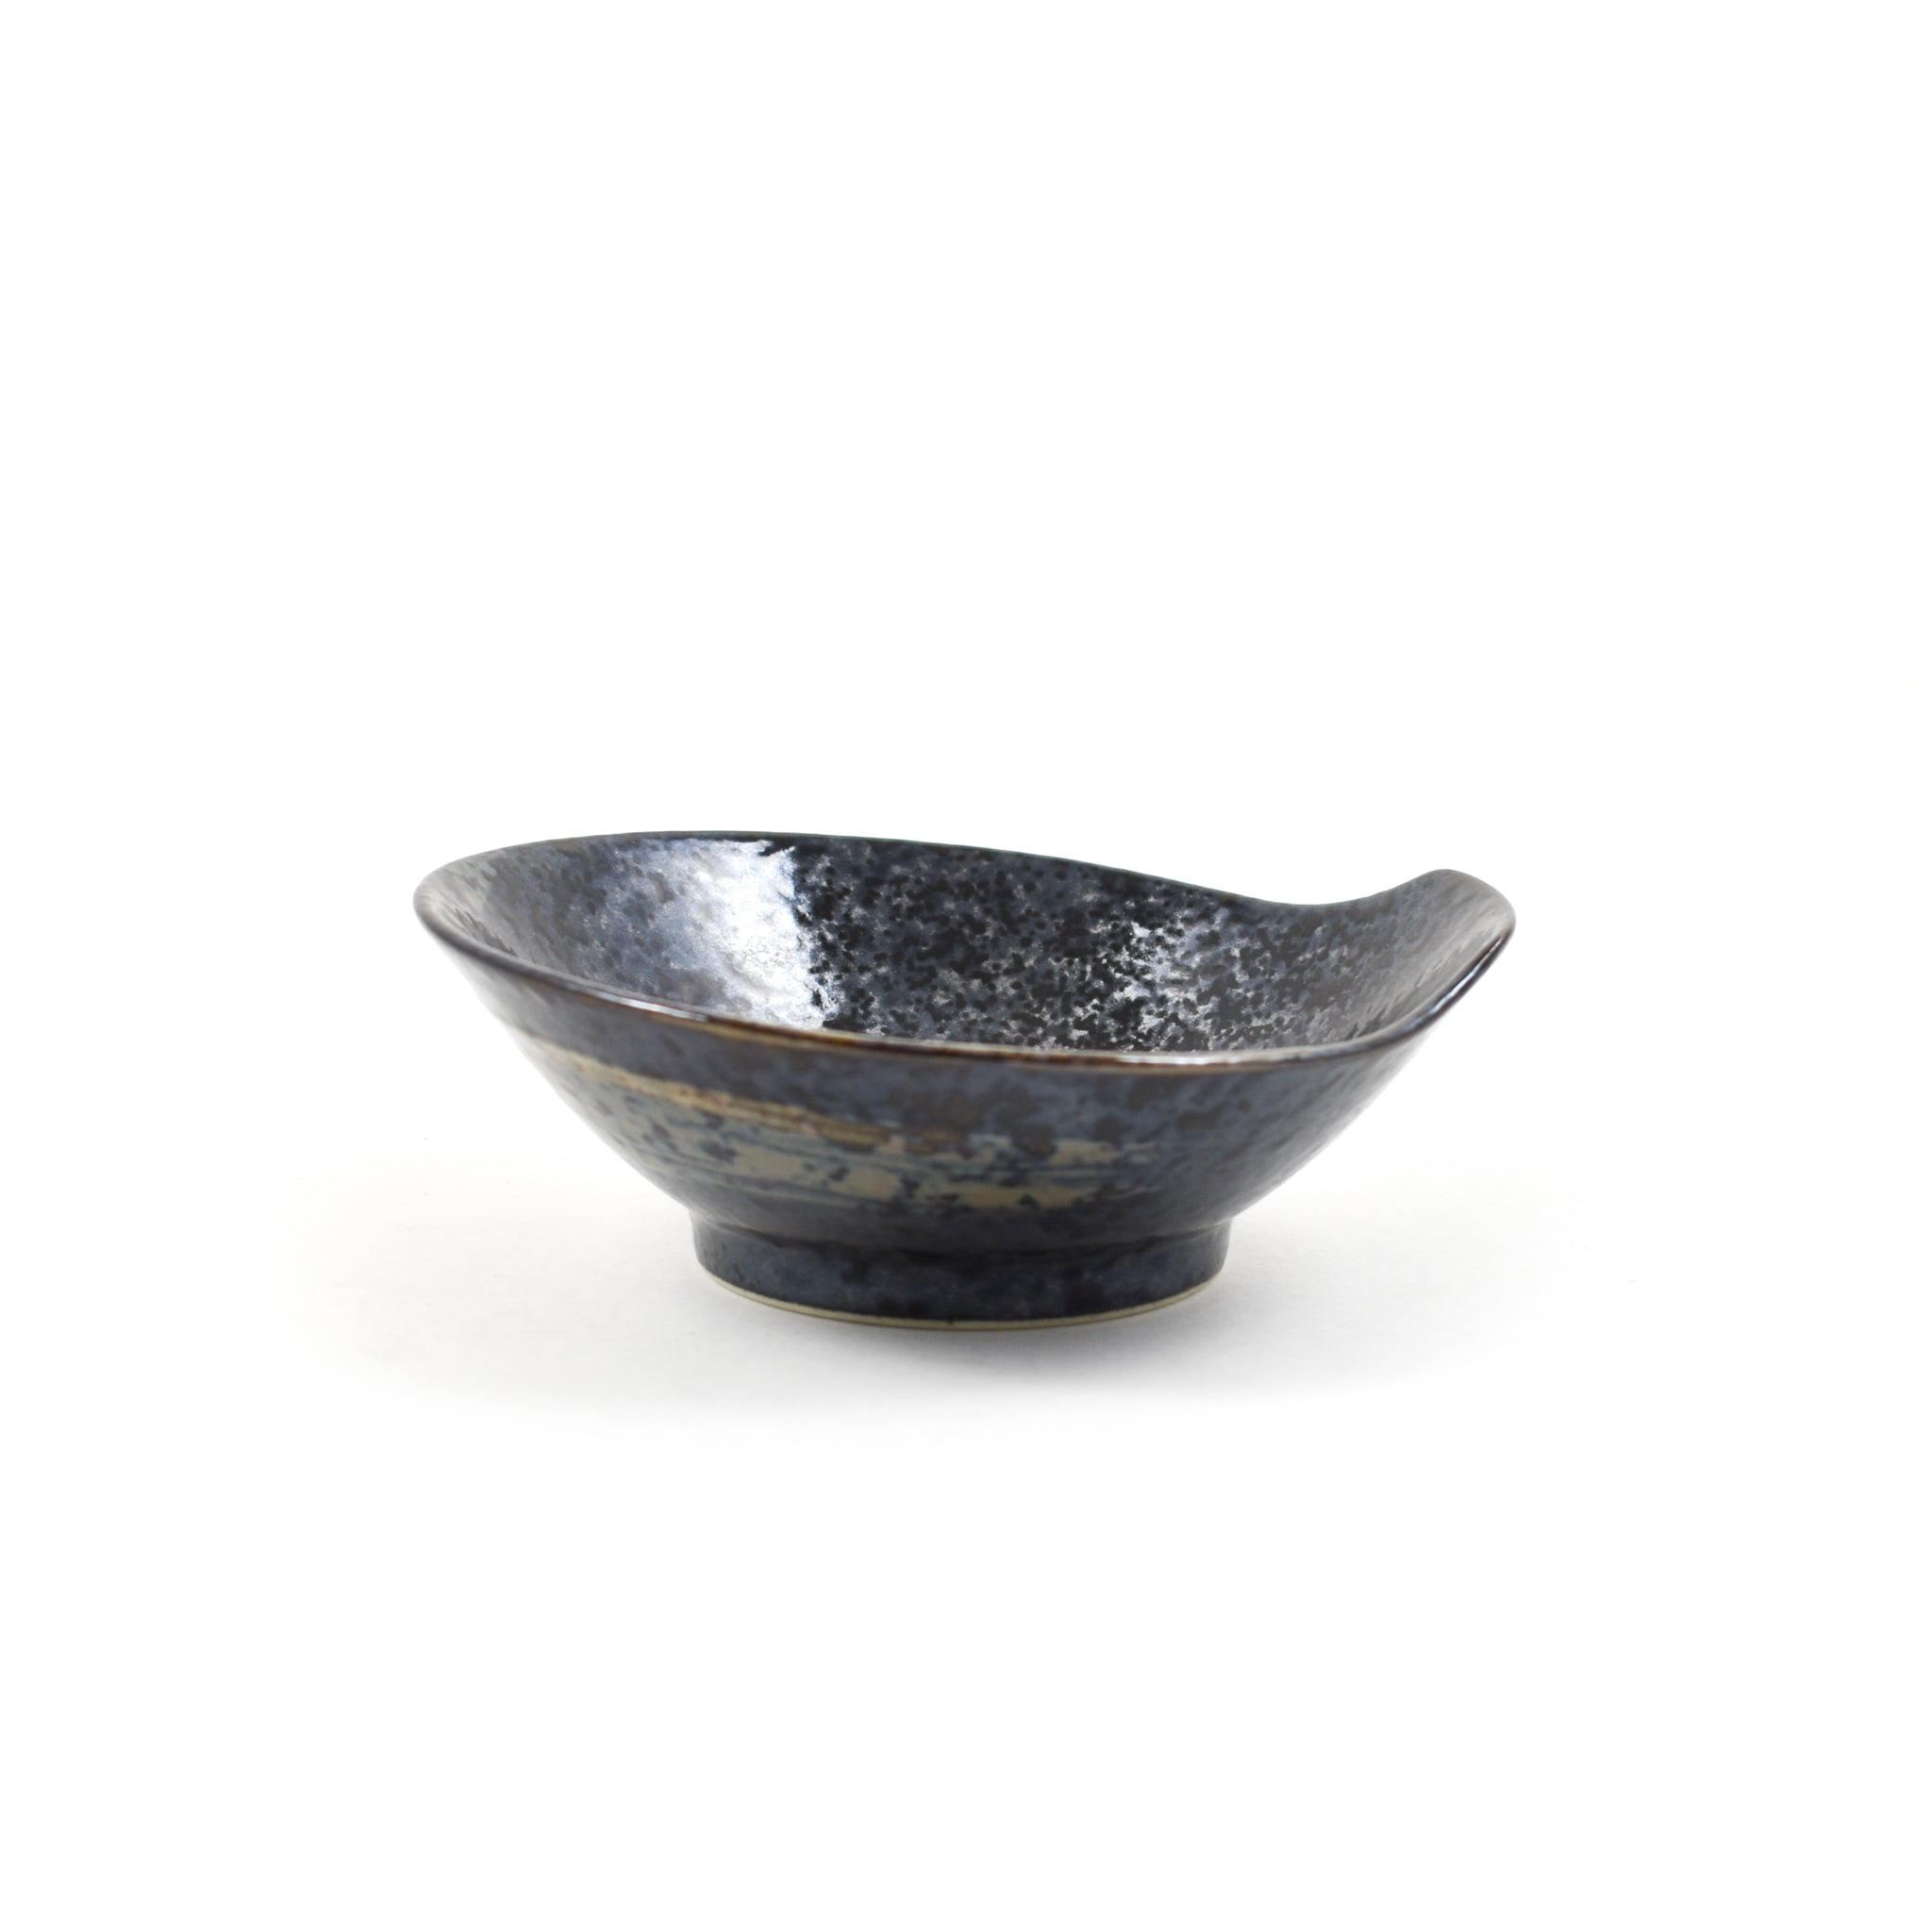 Kiji Stoneware & Ceramics Karasuba-Iro Tonsui Bowl Tableware Japanese Tableware Japanese Food